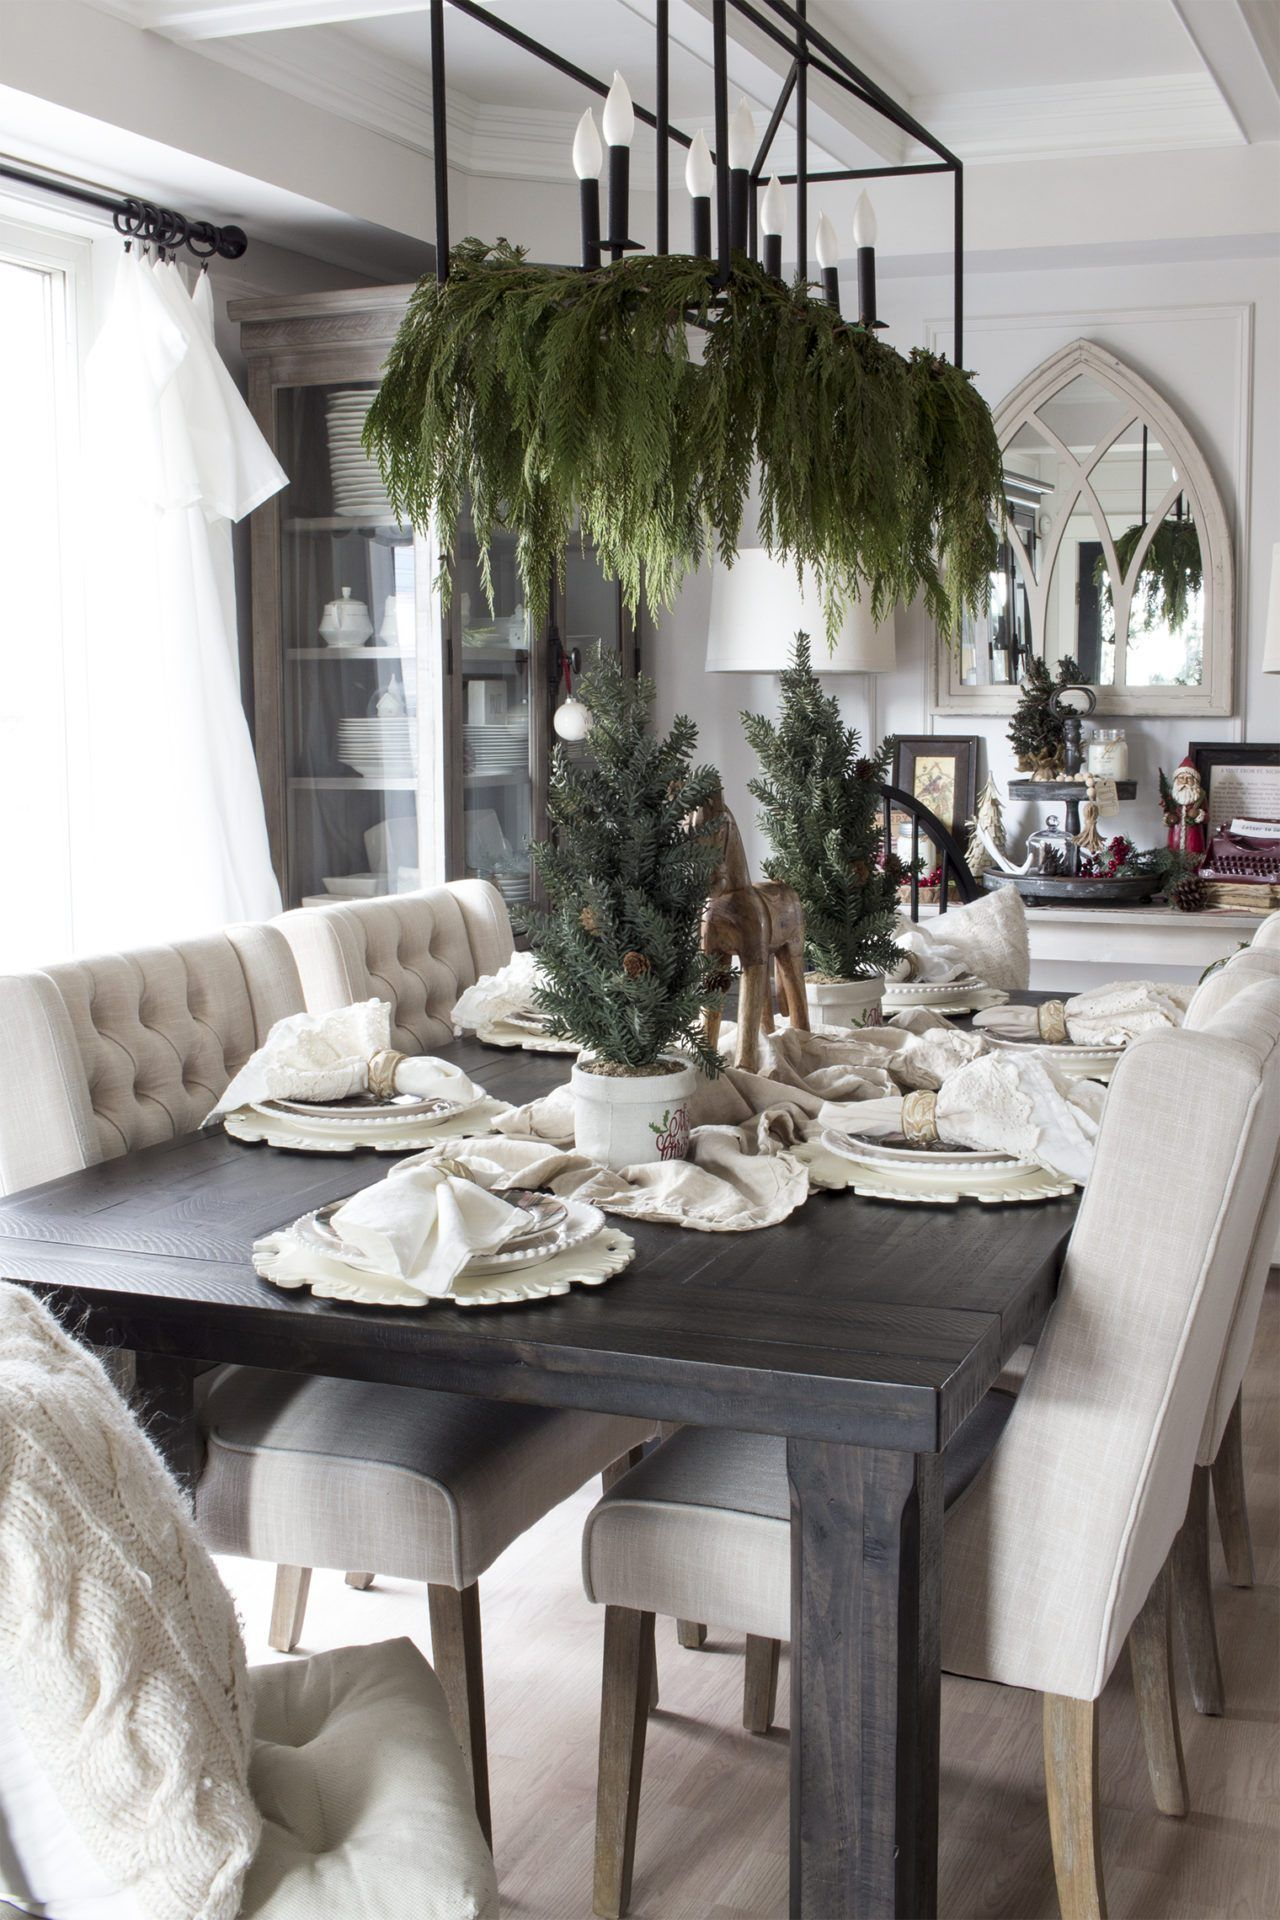 Modern Farmhouse Dining Room Filled With Cozy Christmas Decor Modern Farmhouse Dining Room Christmas Dining Room Table Decor Christmas Dining Room Table